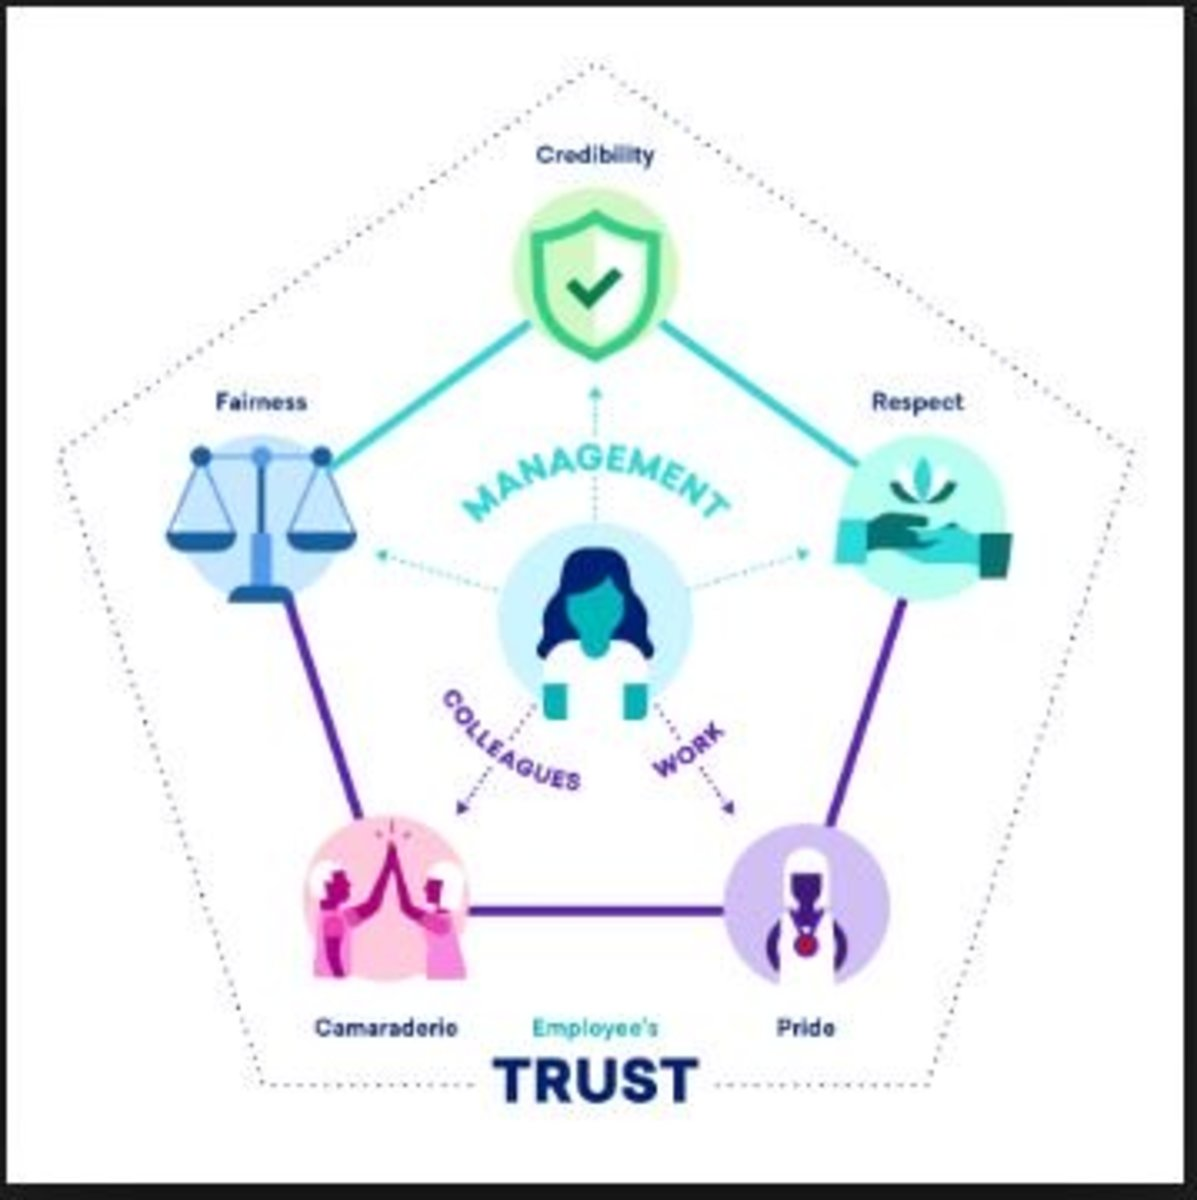 The Relationship Between Trust and Leadership in the Workplace